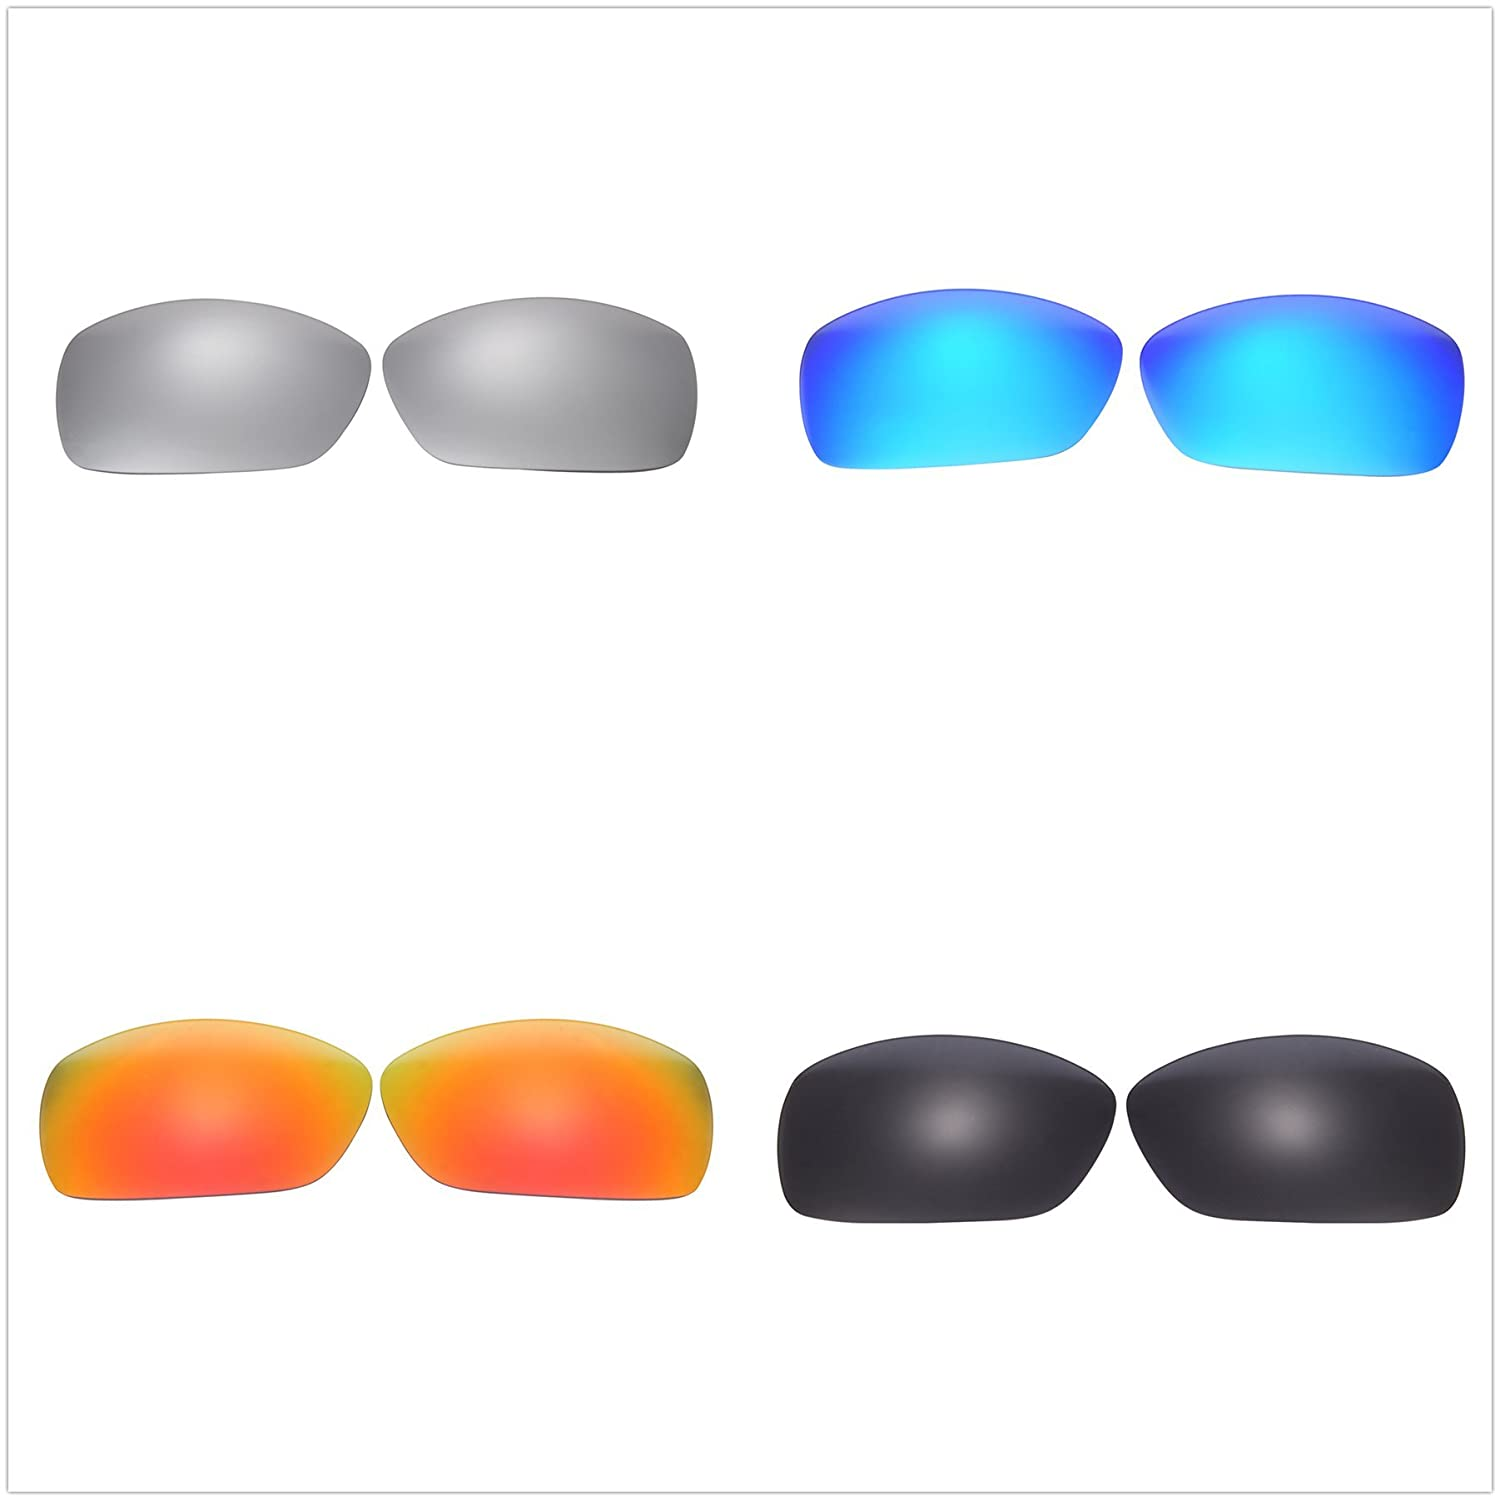 5b537457d0 Amazon.com  4 Pairs Polarized Replacement Lenses for Oakley Hijinx  Sunglasses NicelyFit  Clothing